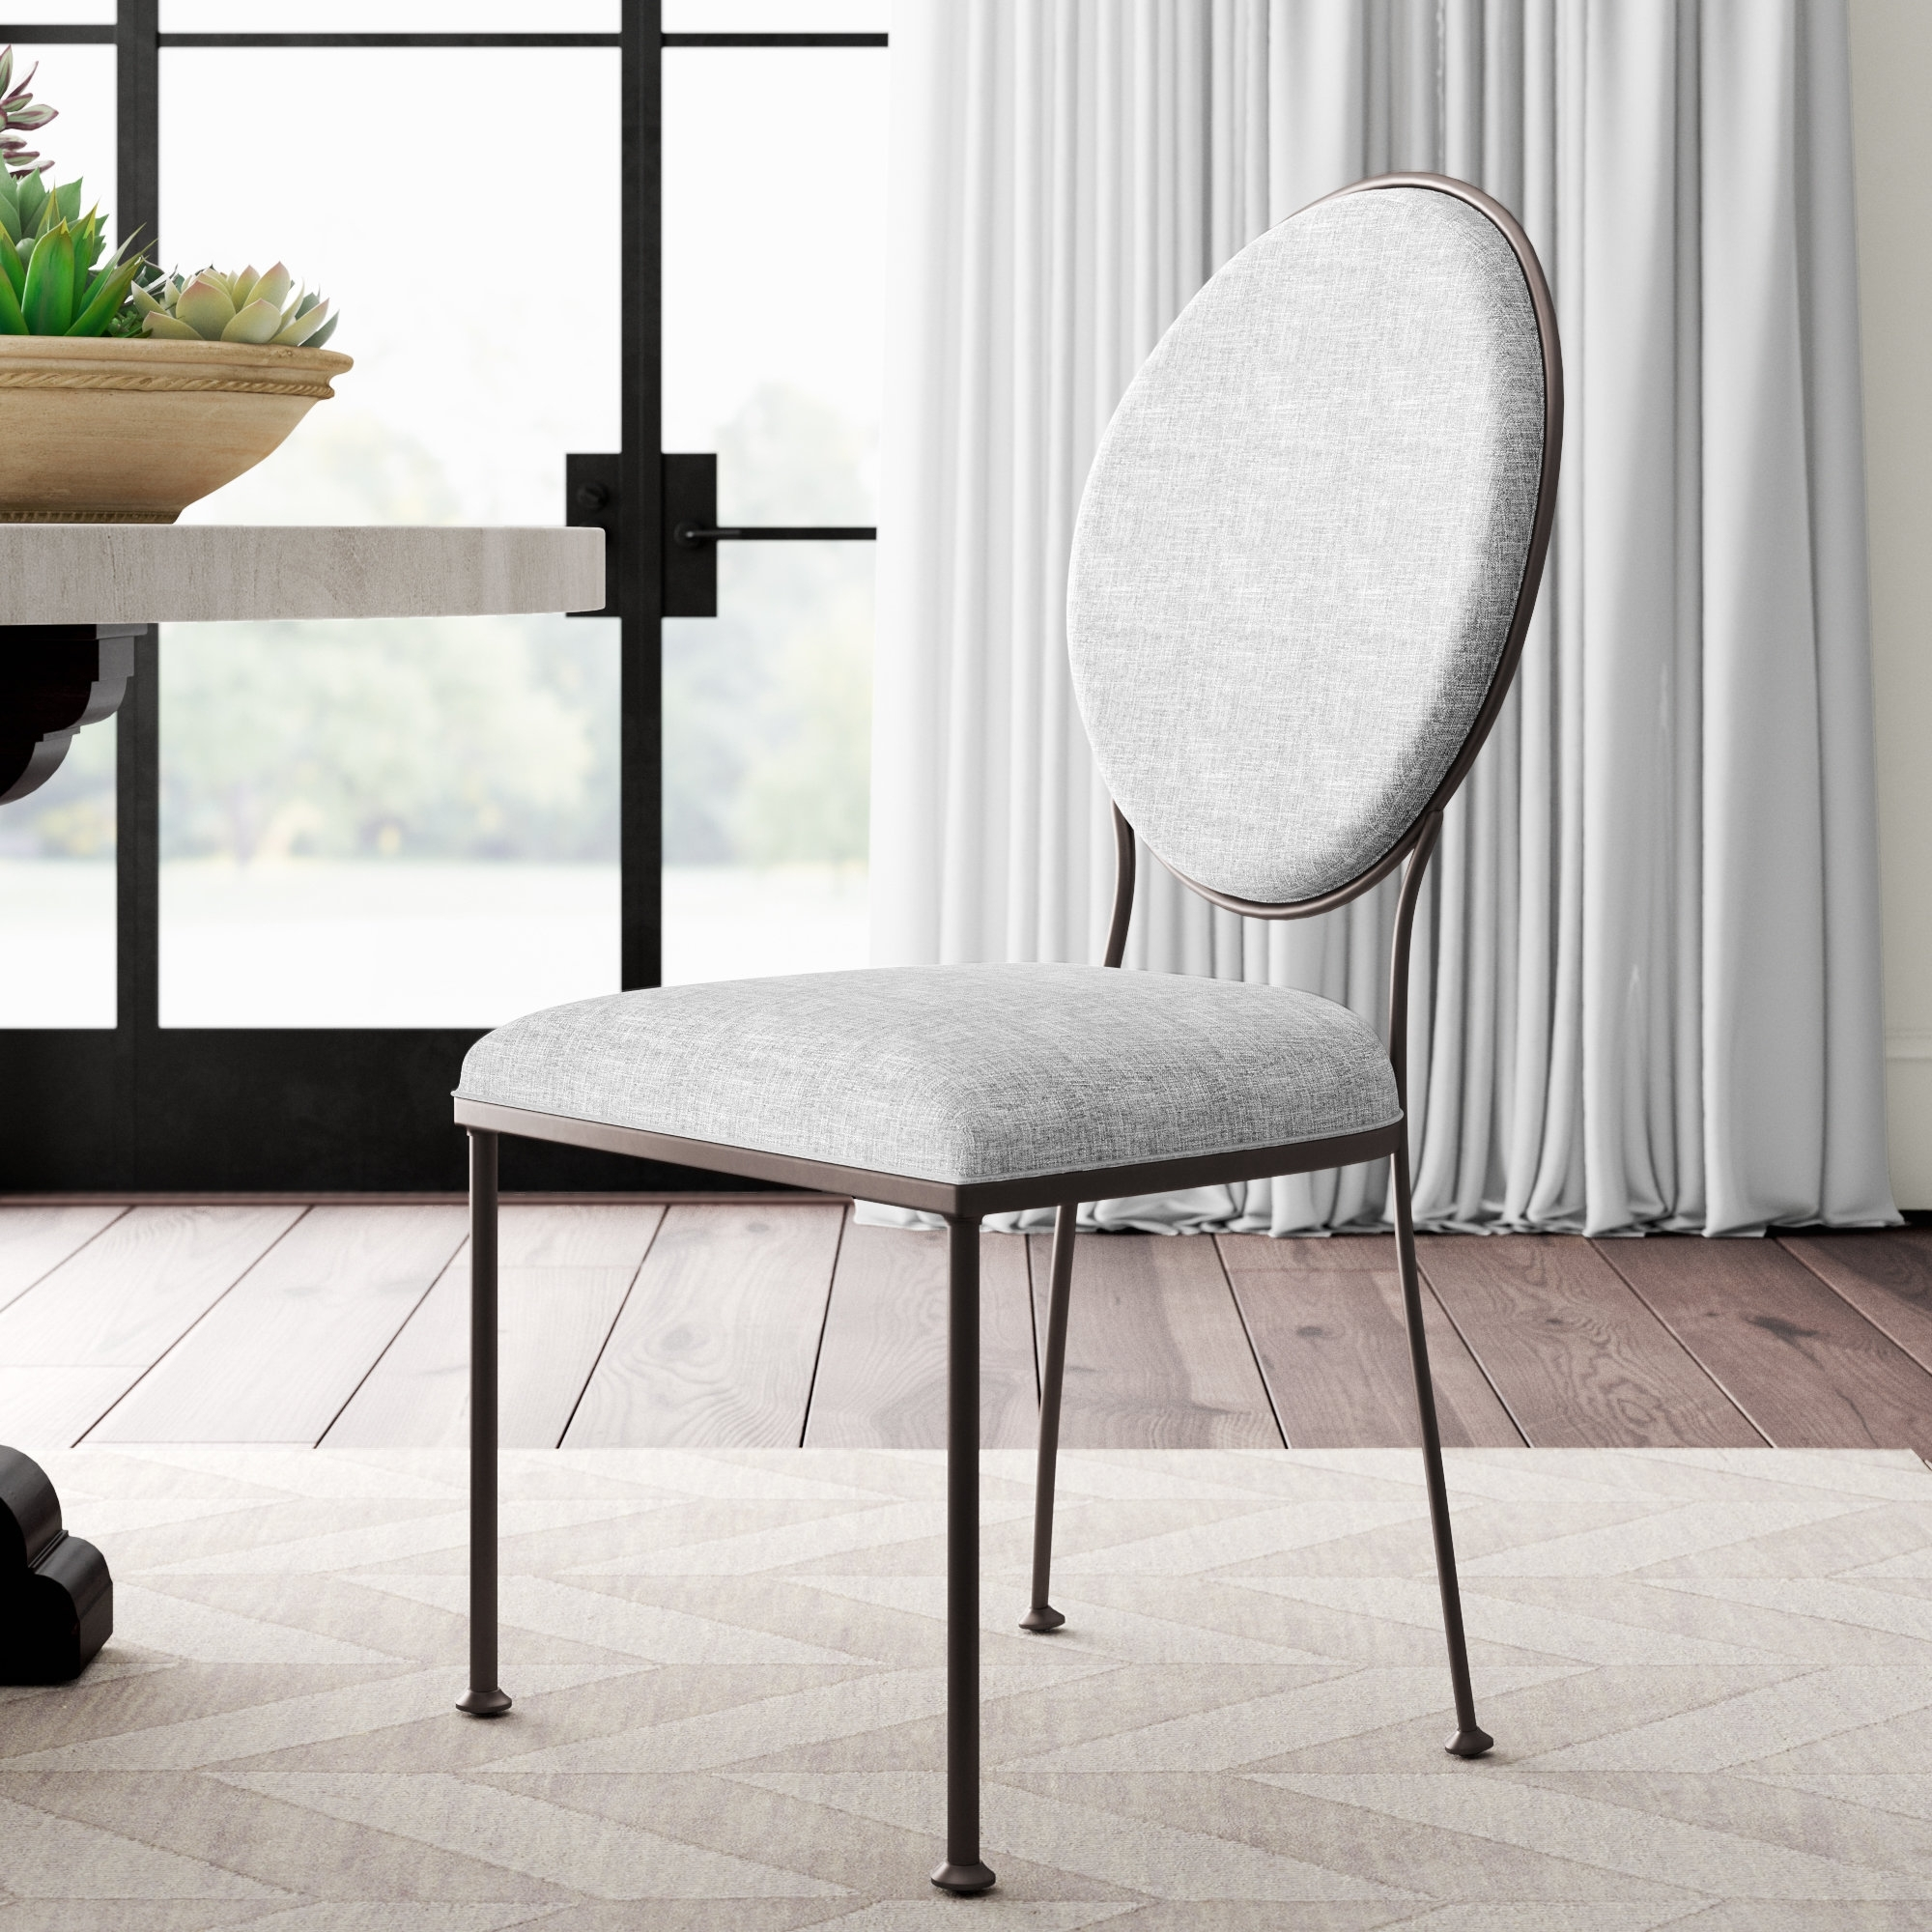 Greyleigh Cairo Oval Back Upholstered Dining Chair | Wayfair With Most Recently Released Caira Black 5 Piece Round Dining Sets With Upholstered Side Chairs (Photo 10 of 20)